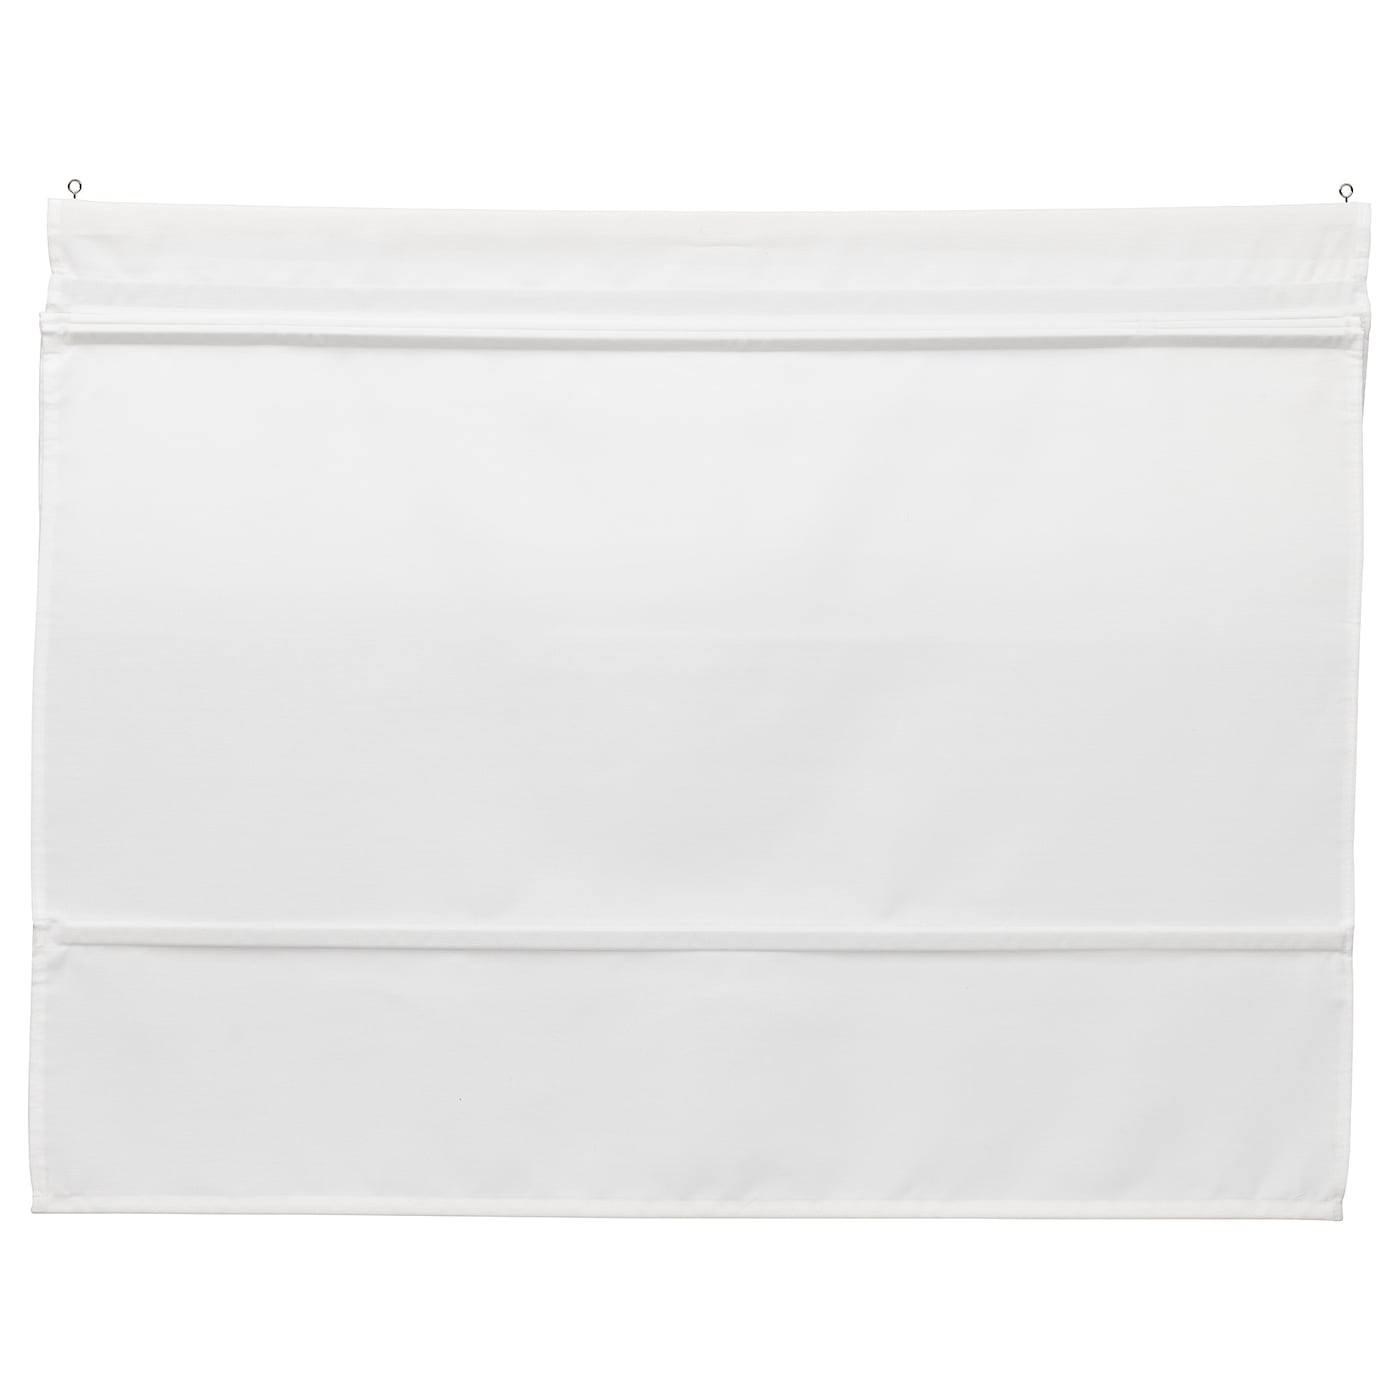 IKEA RINGBLOMMA Roman blind The fabric part can be machine washed.